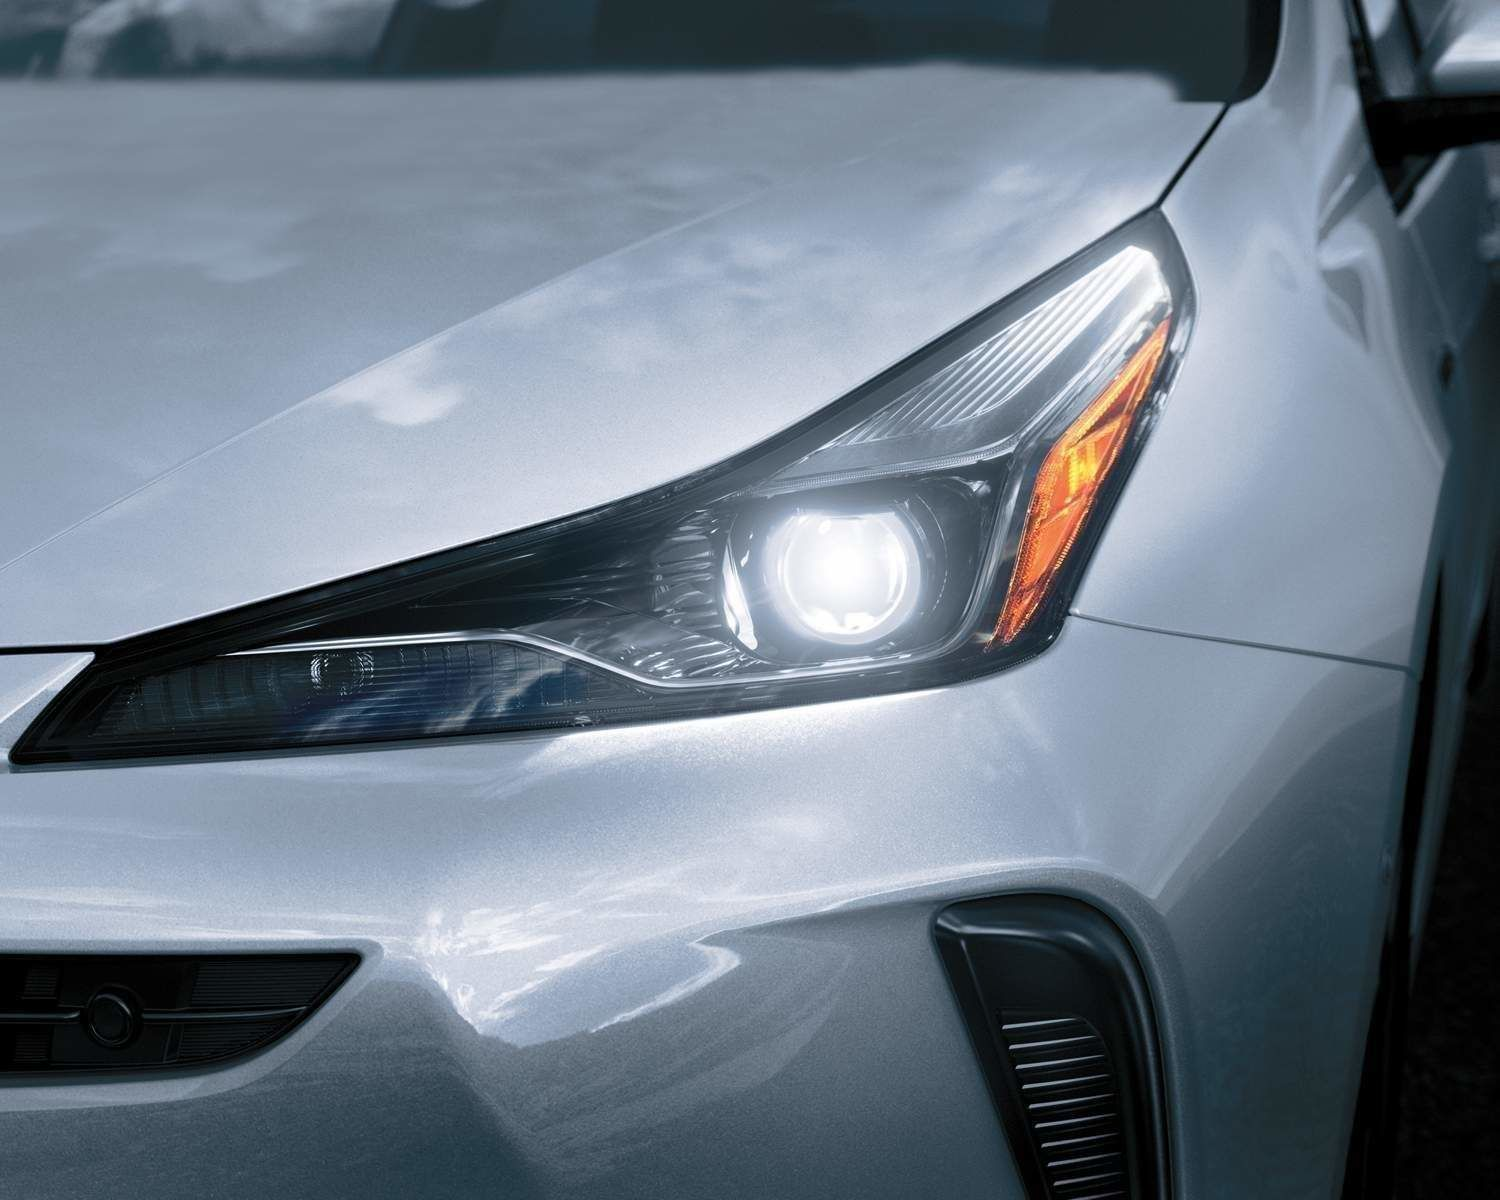 Prius LED headlamps